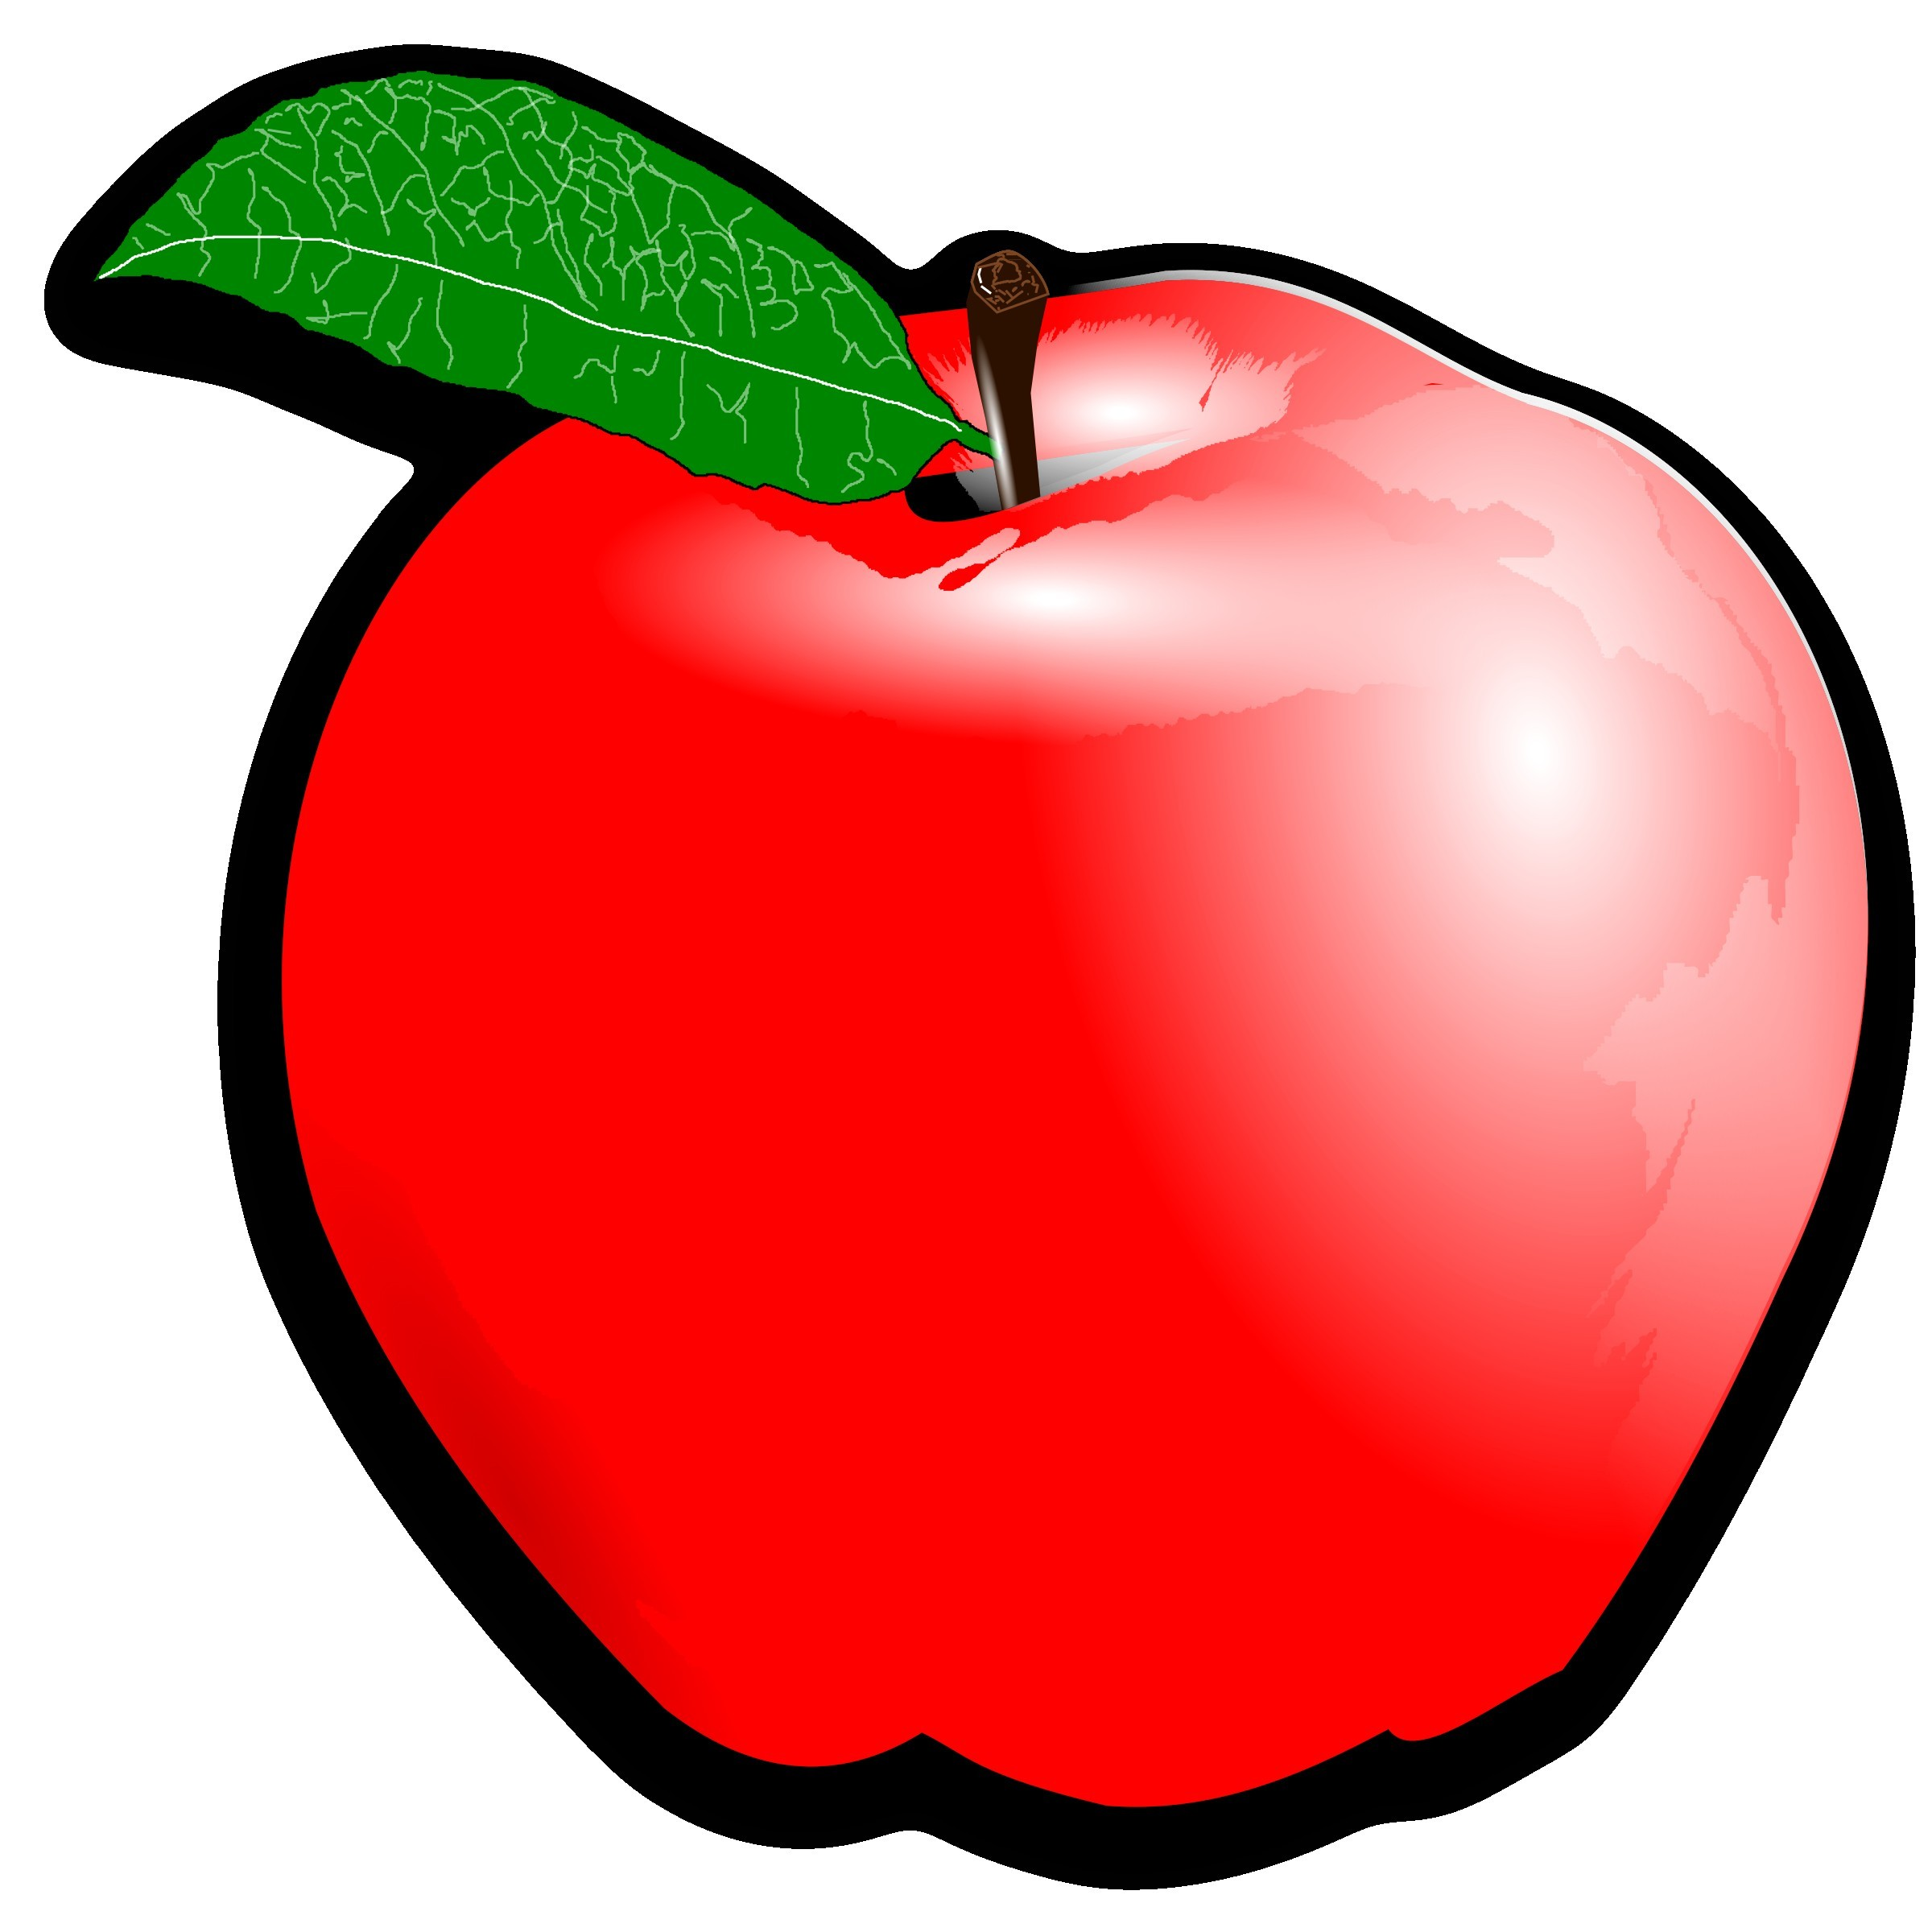 Apple produce clipart png freeuse library Red,Apple,Fruit,Clip art,Mcintosh,Plant,Graphics,Food,Tree,Seedless ... png freeuse library